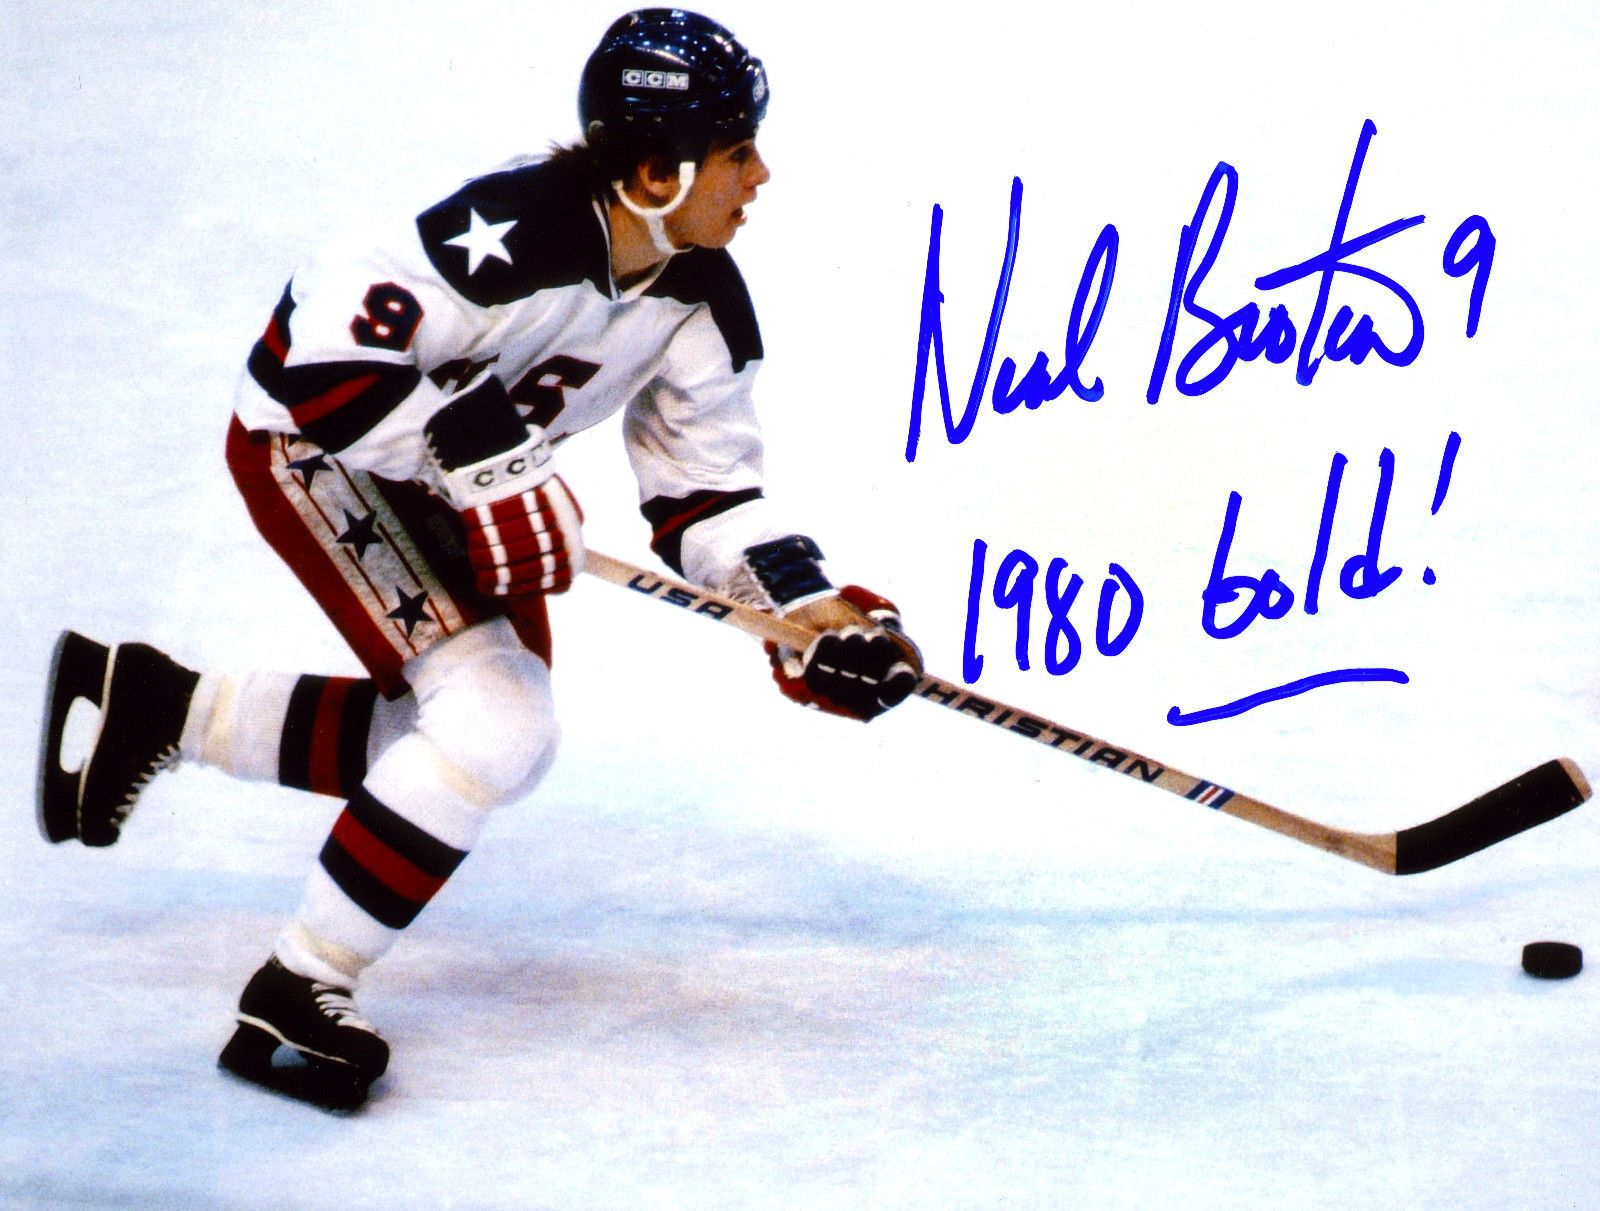 Neal Broten USA 1980 Gold Medal Olympian Signed 8x10 Photo